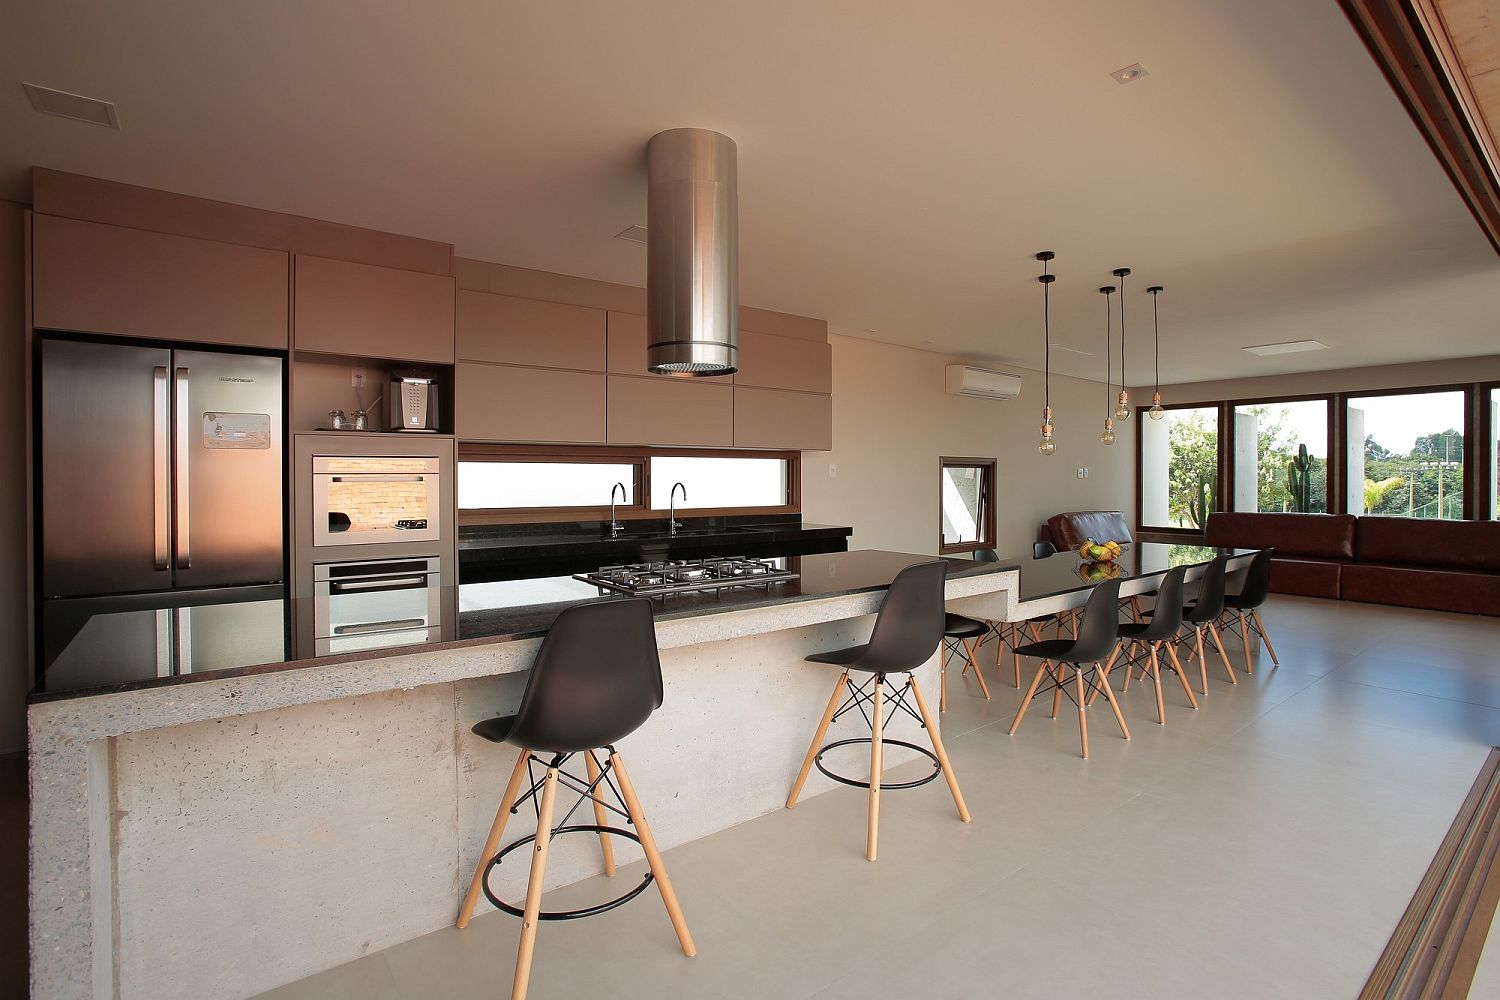 Eames chairs and bar stools for the kitchen and dining